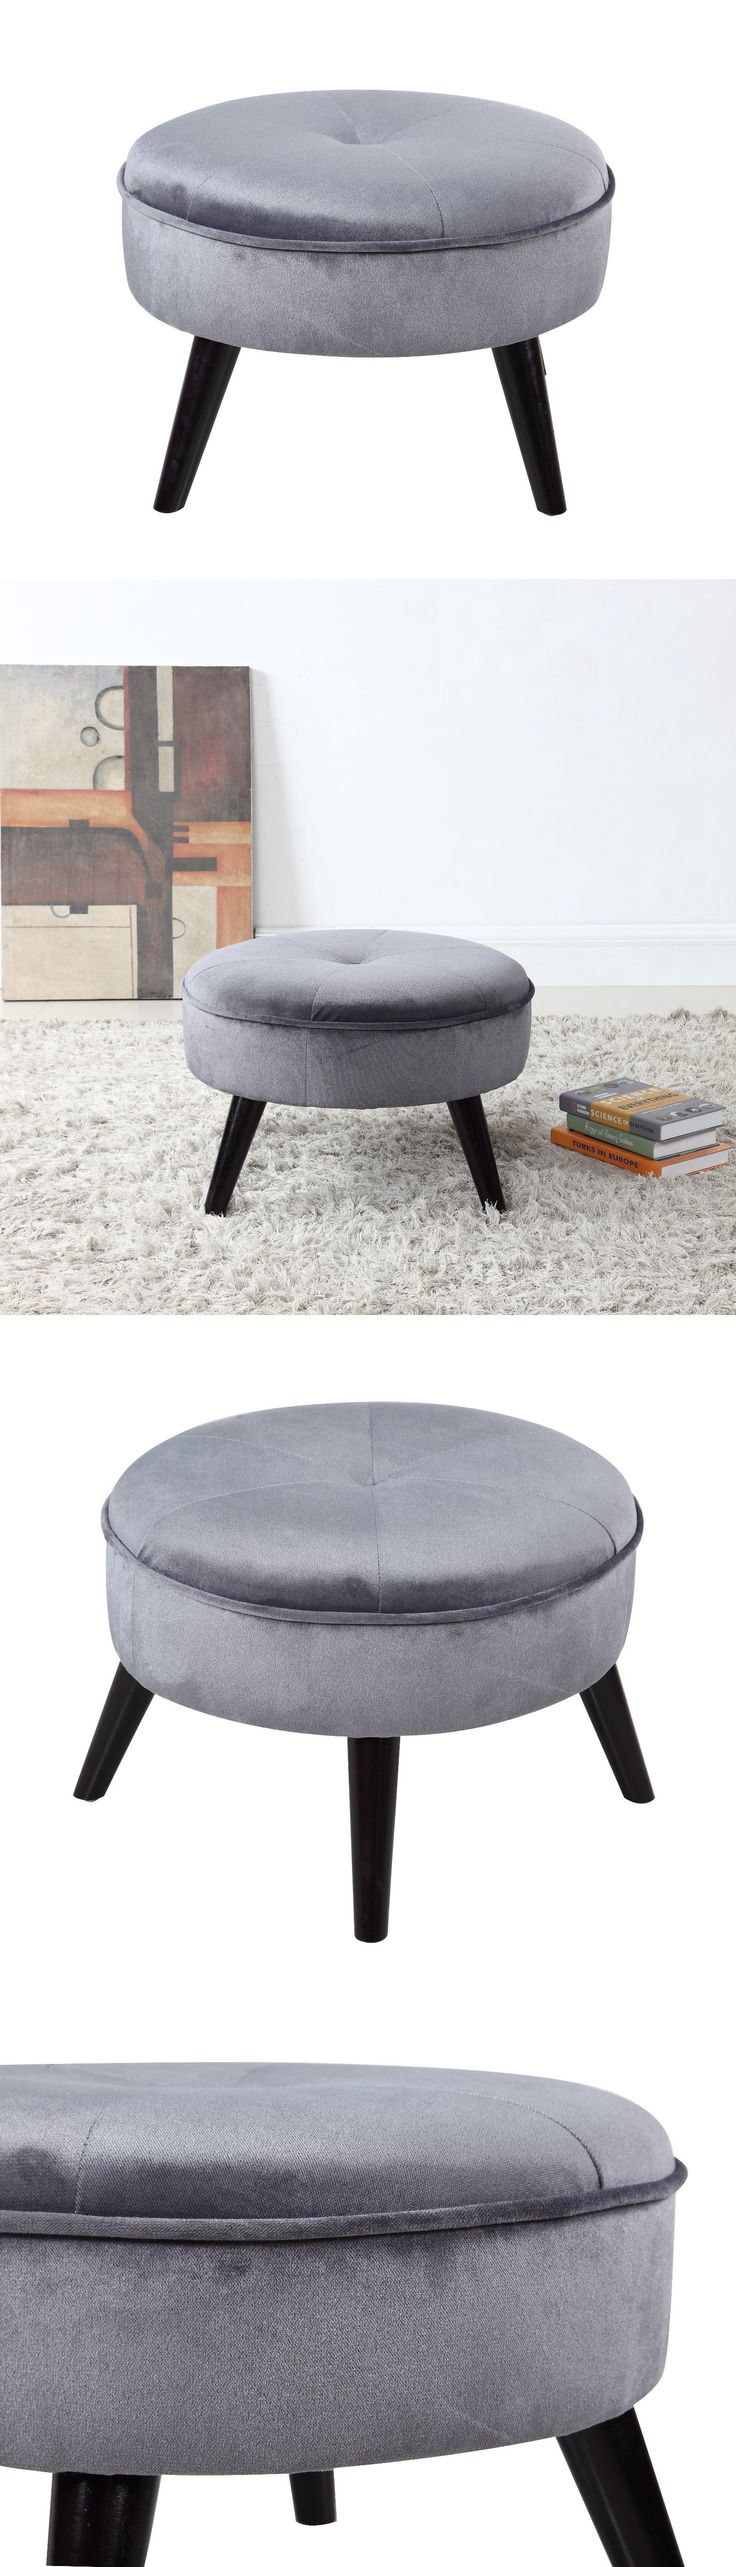 Ottomans Footstools and Poufs 20490: Grey Classic Tufted Large Round Velvet Footrest Footstool Ottoman -> BUY IT NOW ONLY: $49.99 on eBay!